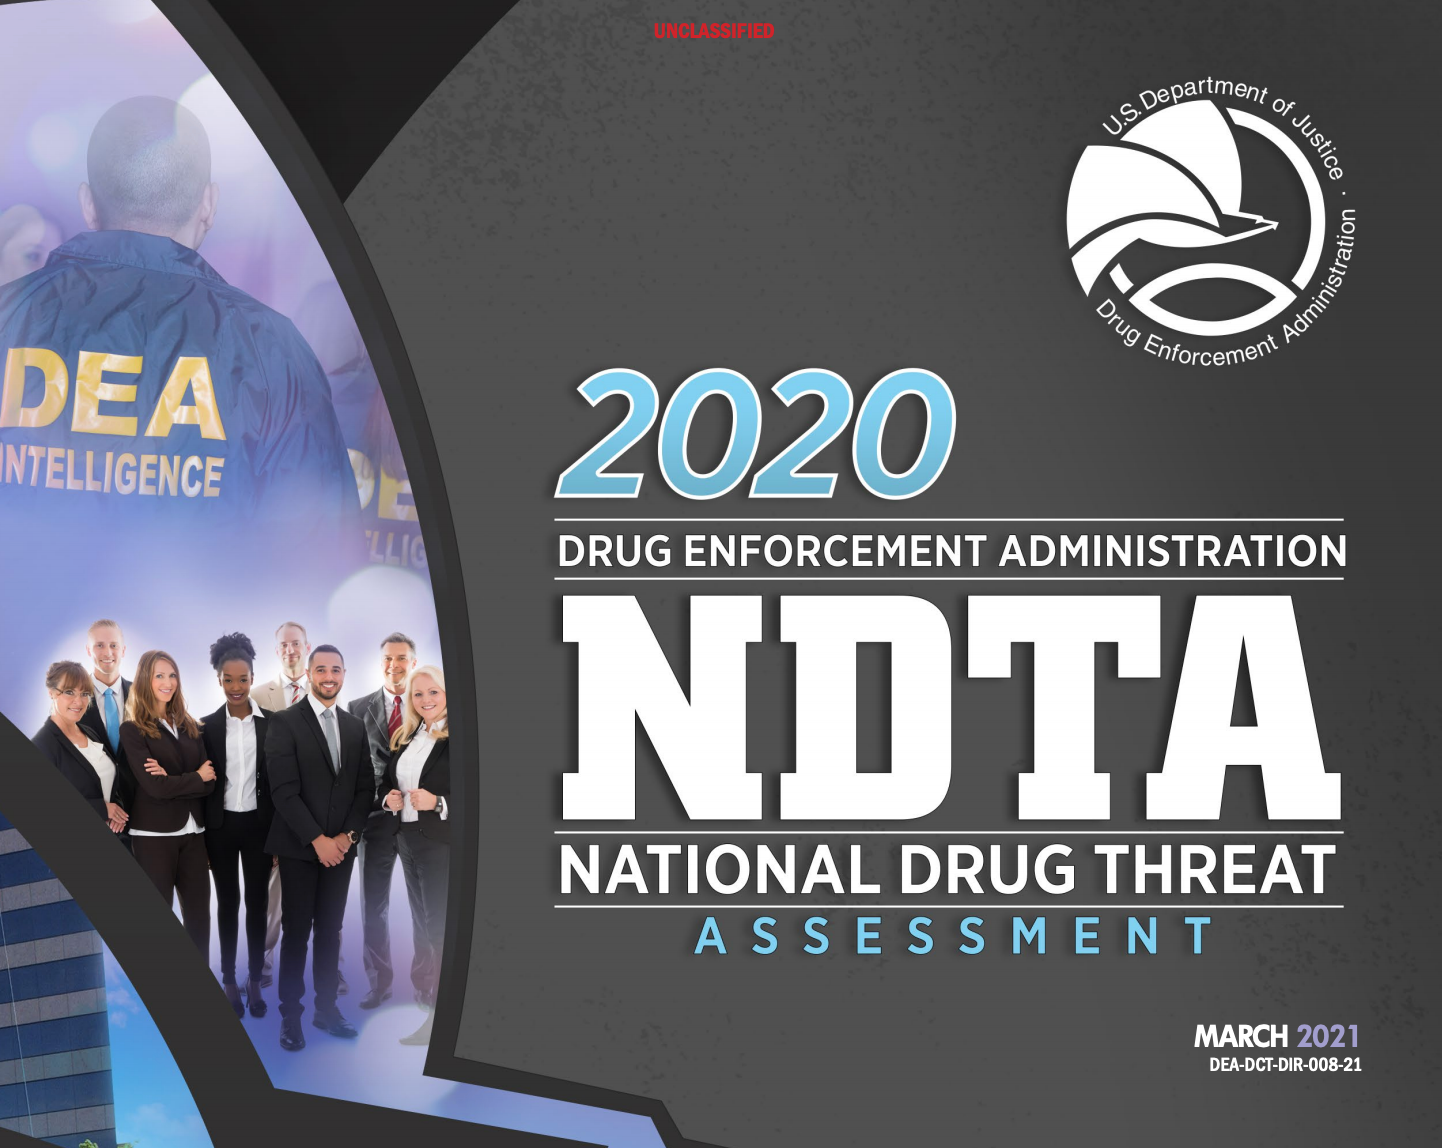 The 2019-2020 National Drug Threat Assessment: Summary